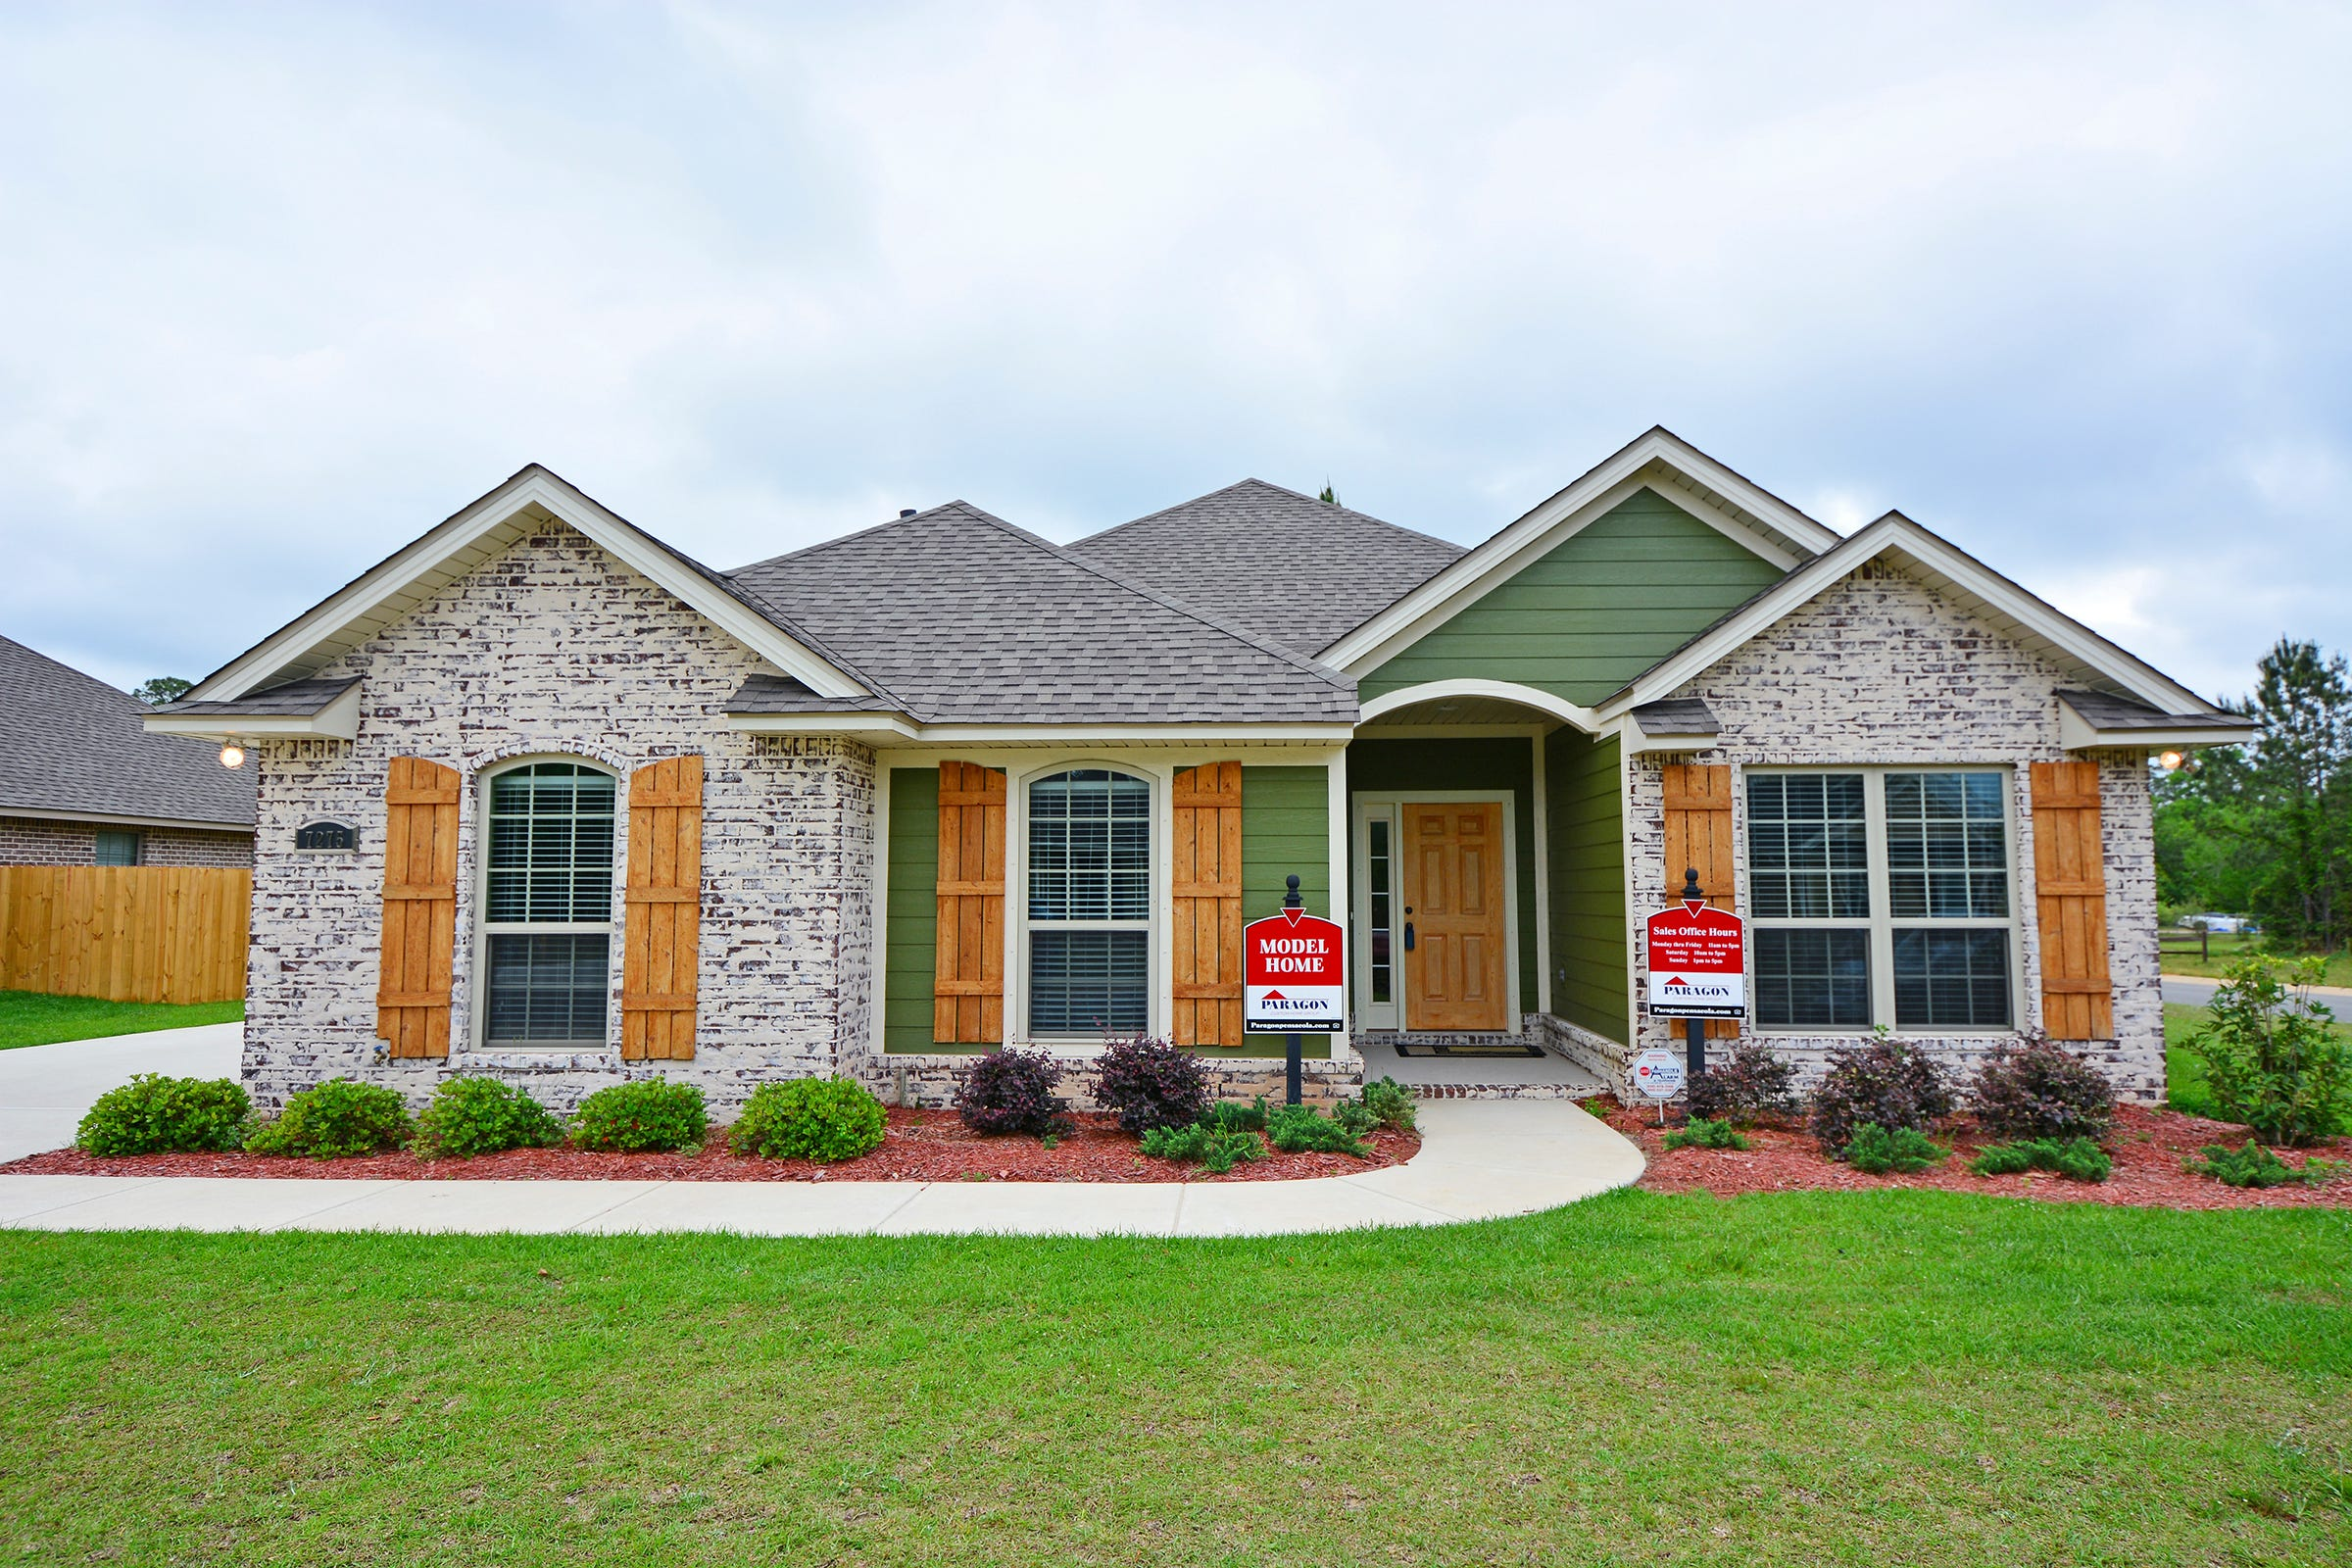 Home building trends gated communities and outdoor living for New home construction trends